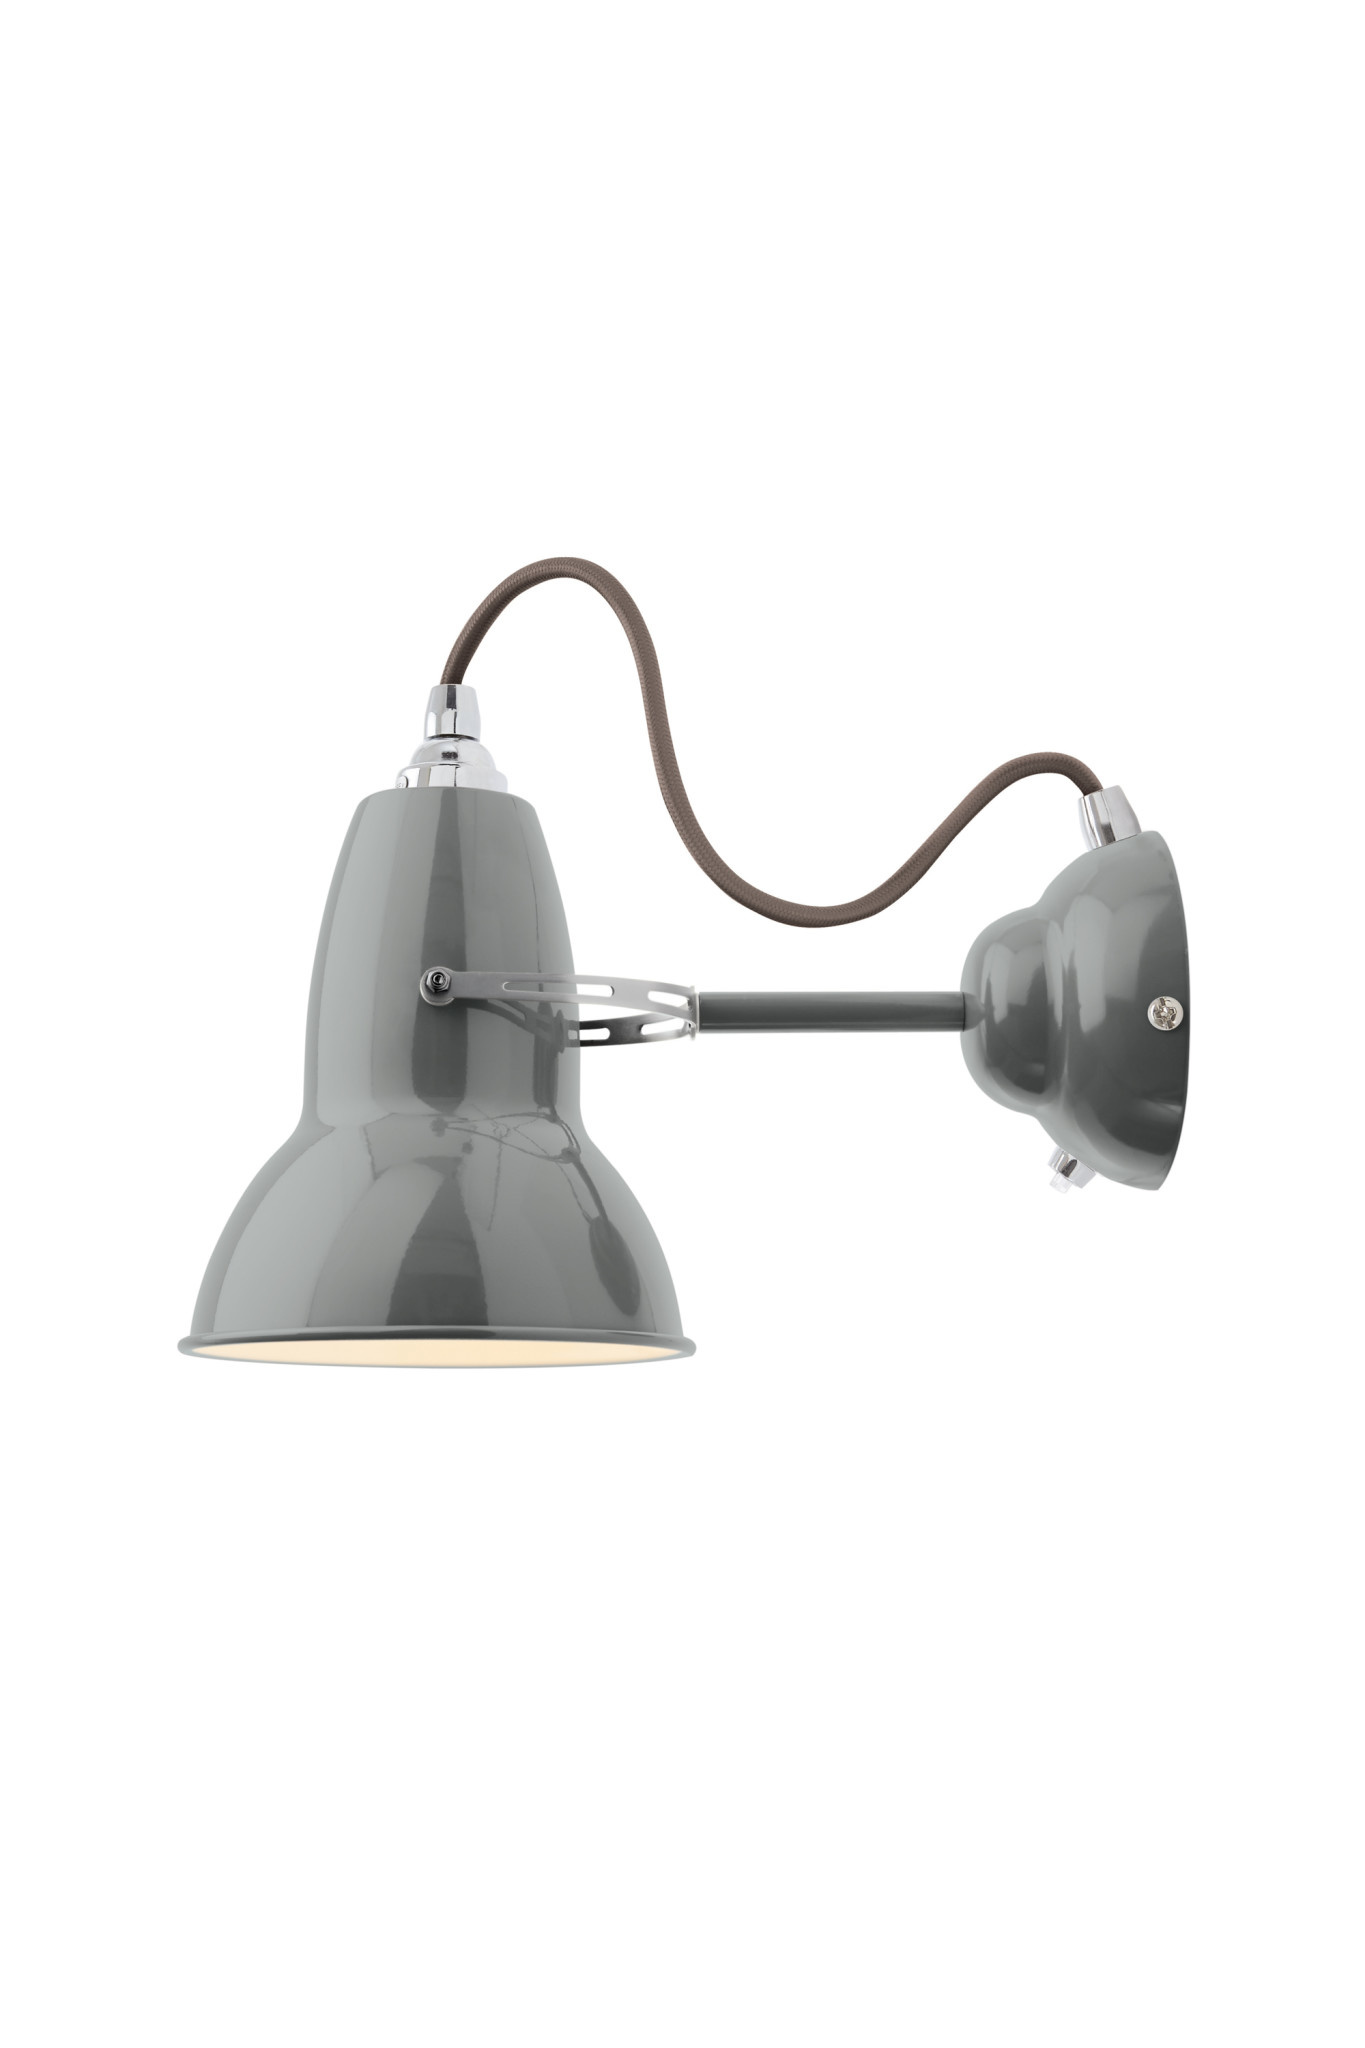 Anglepoise PREORDER Original 1227 Wall Light Sconce - Dove Grey with Chrome